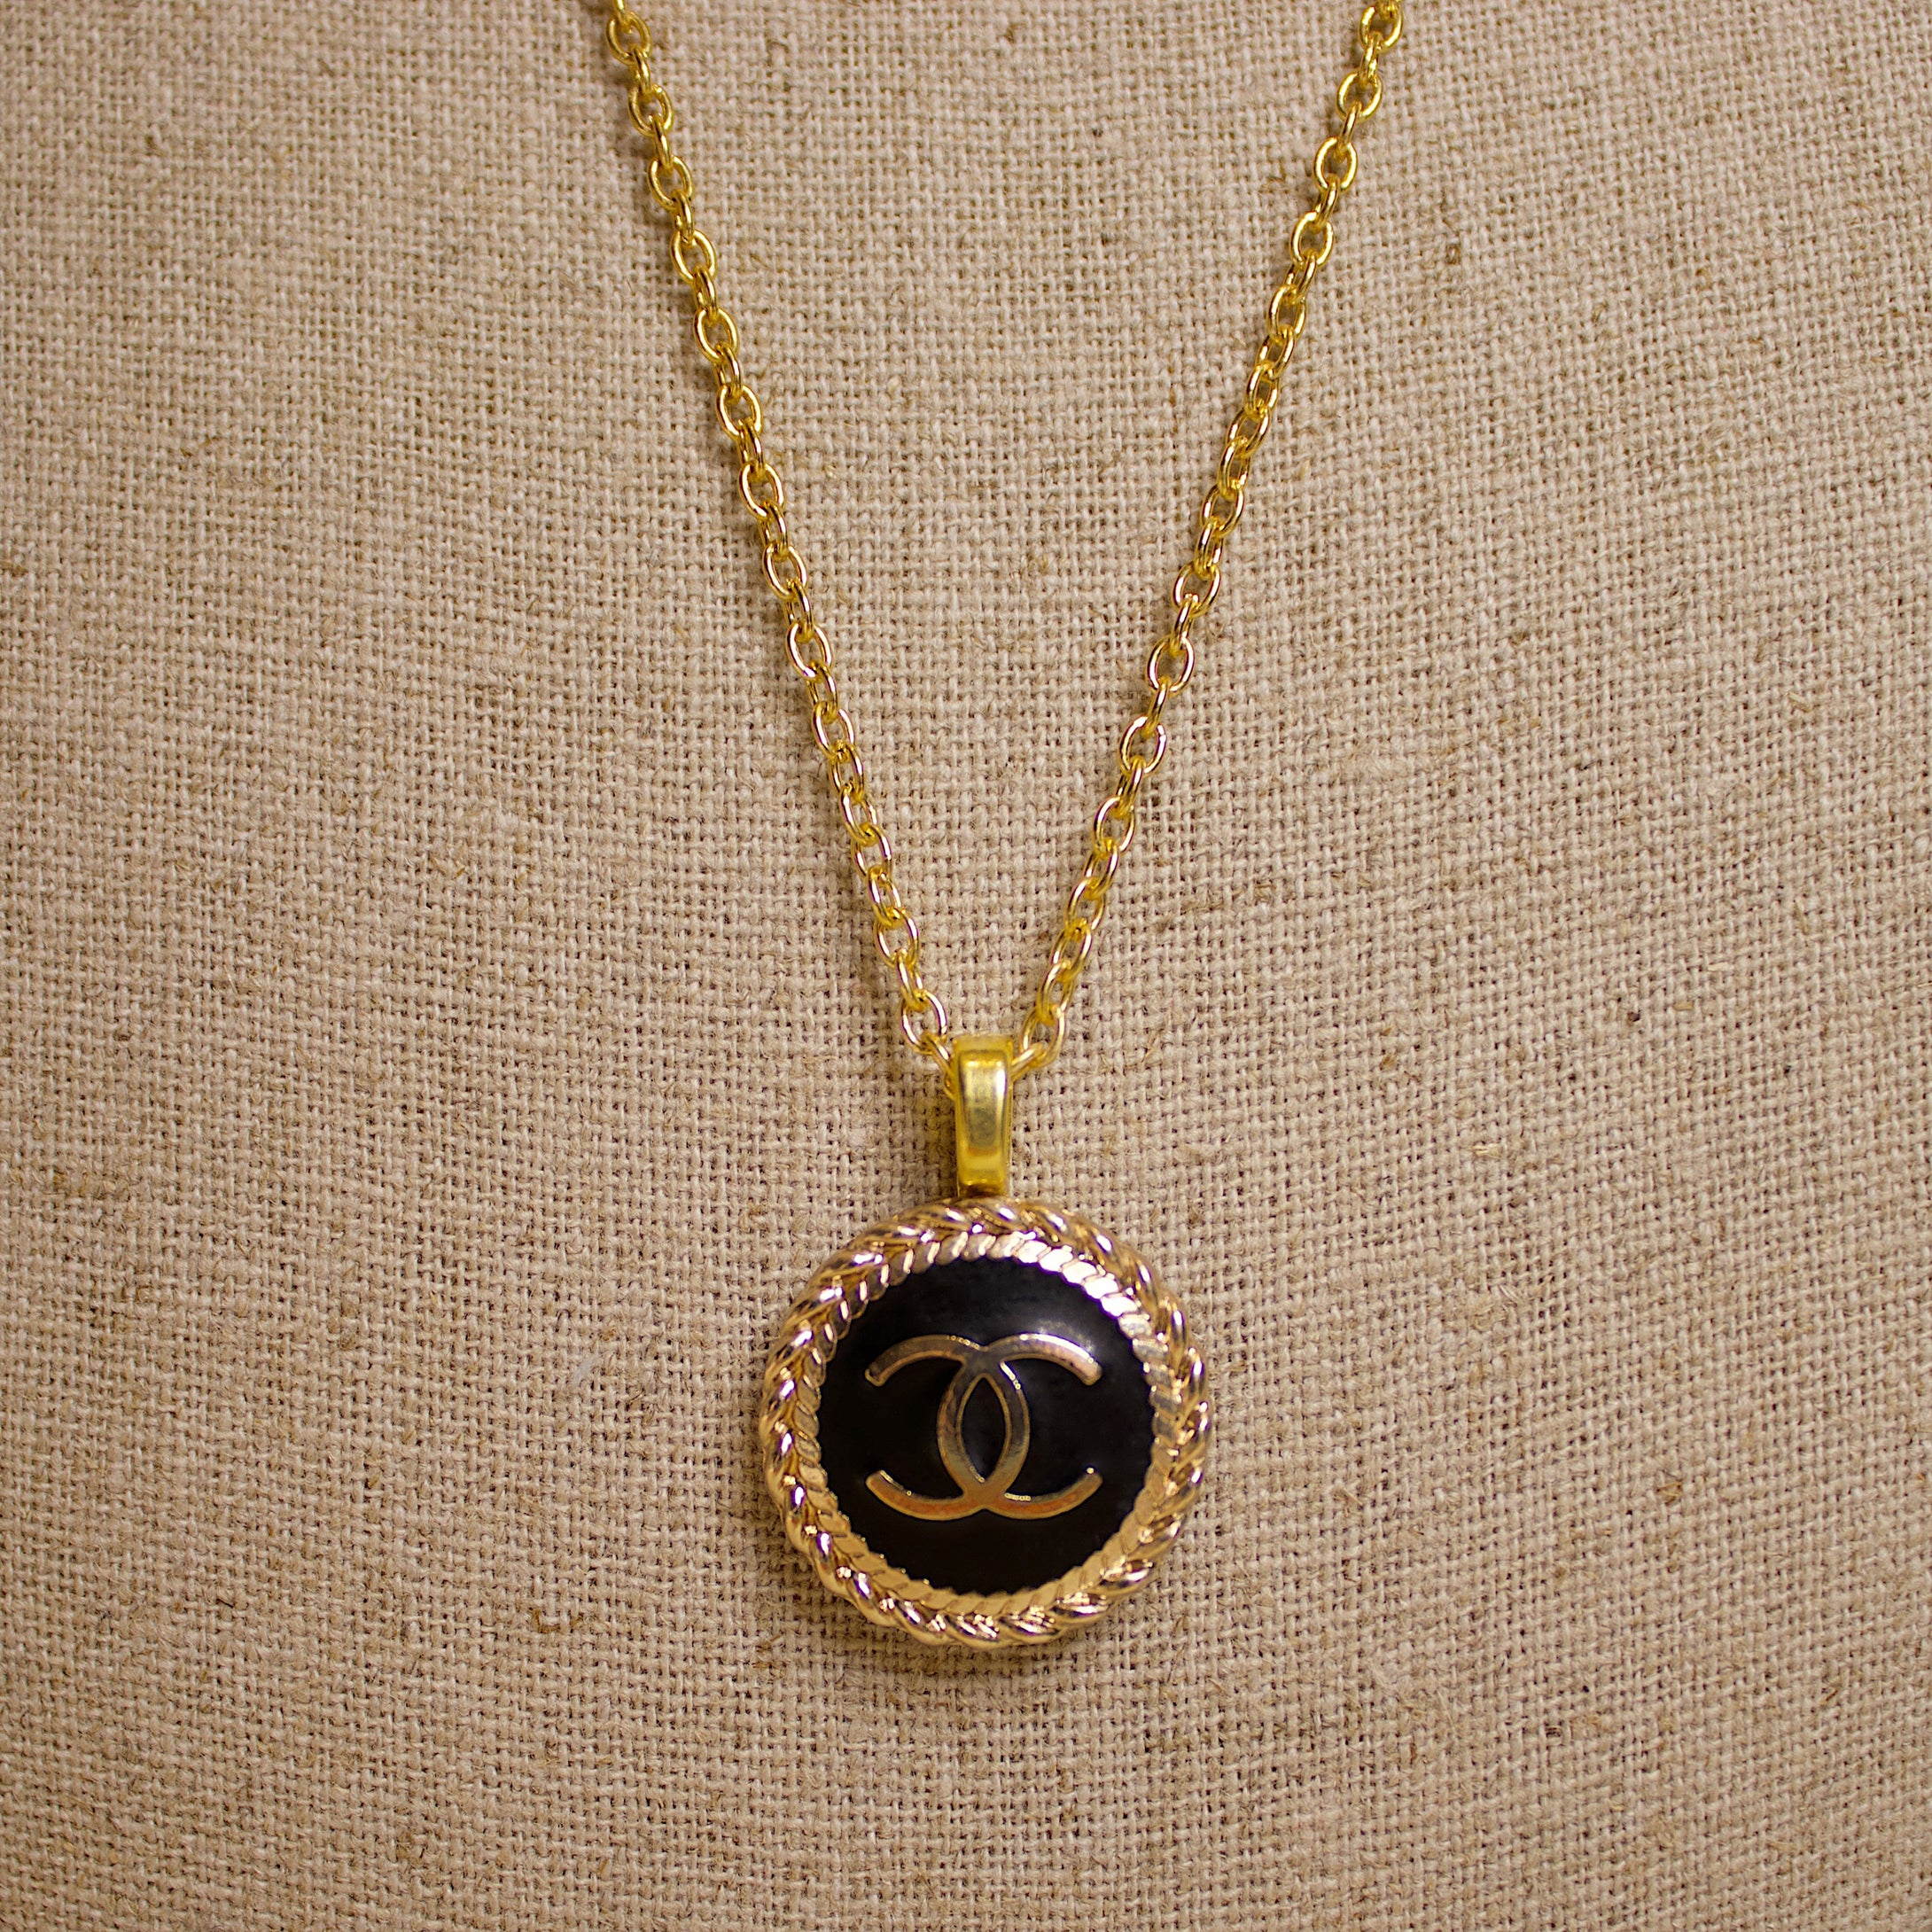 Repurposed Black Circle Chanel CC Button Necklace